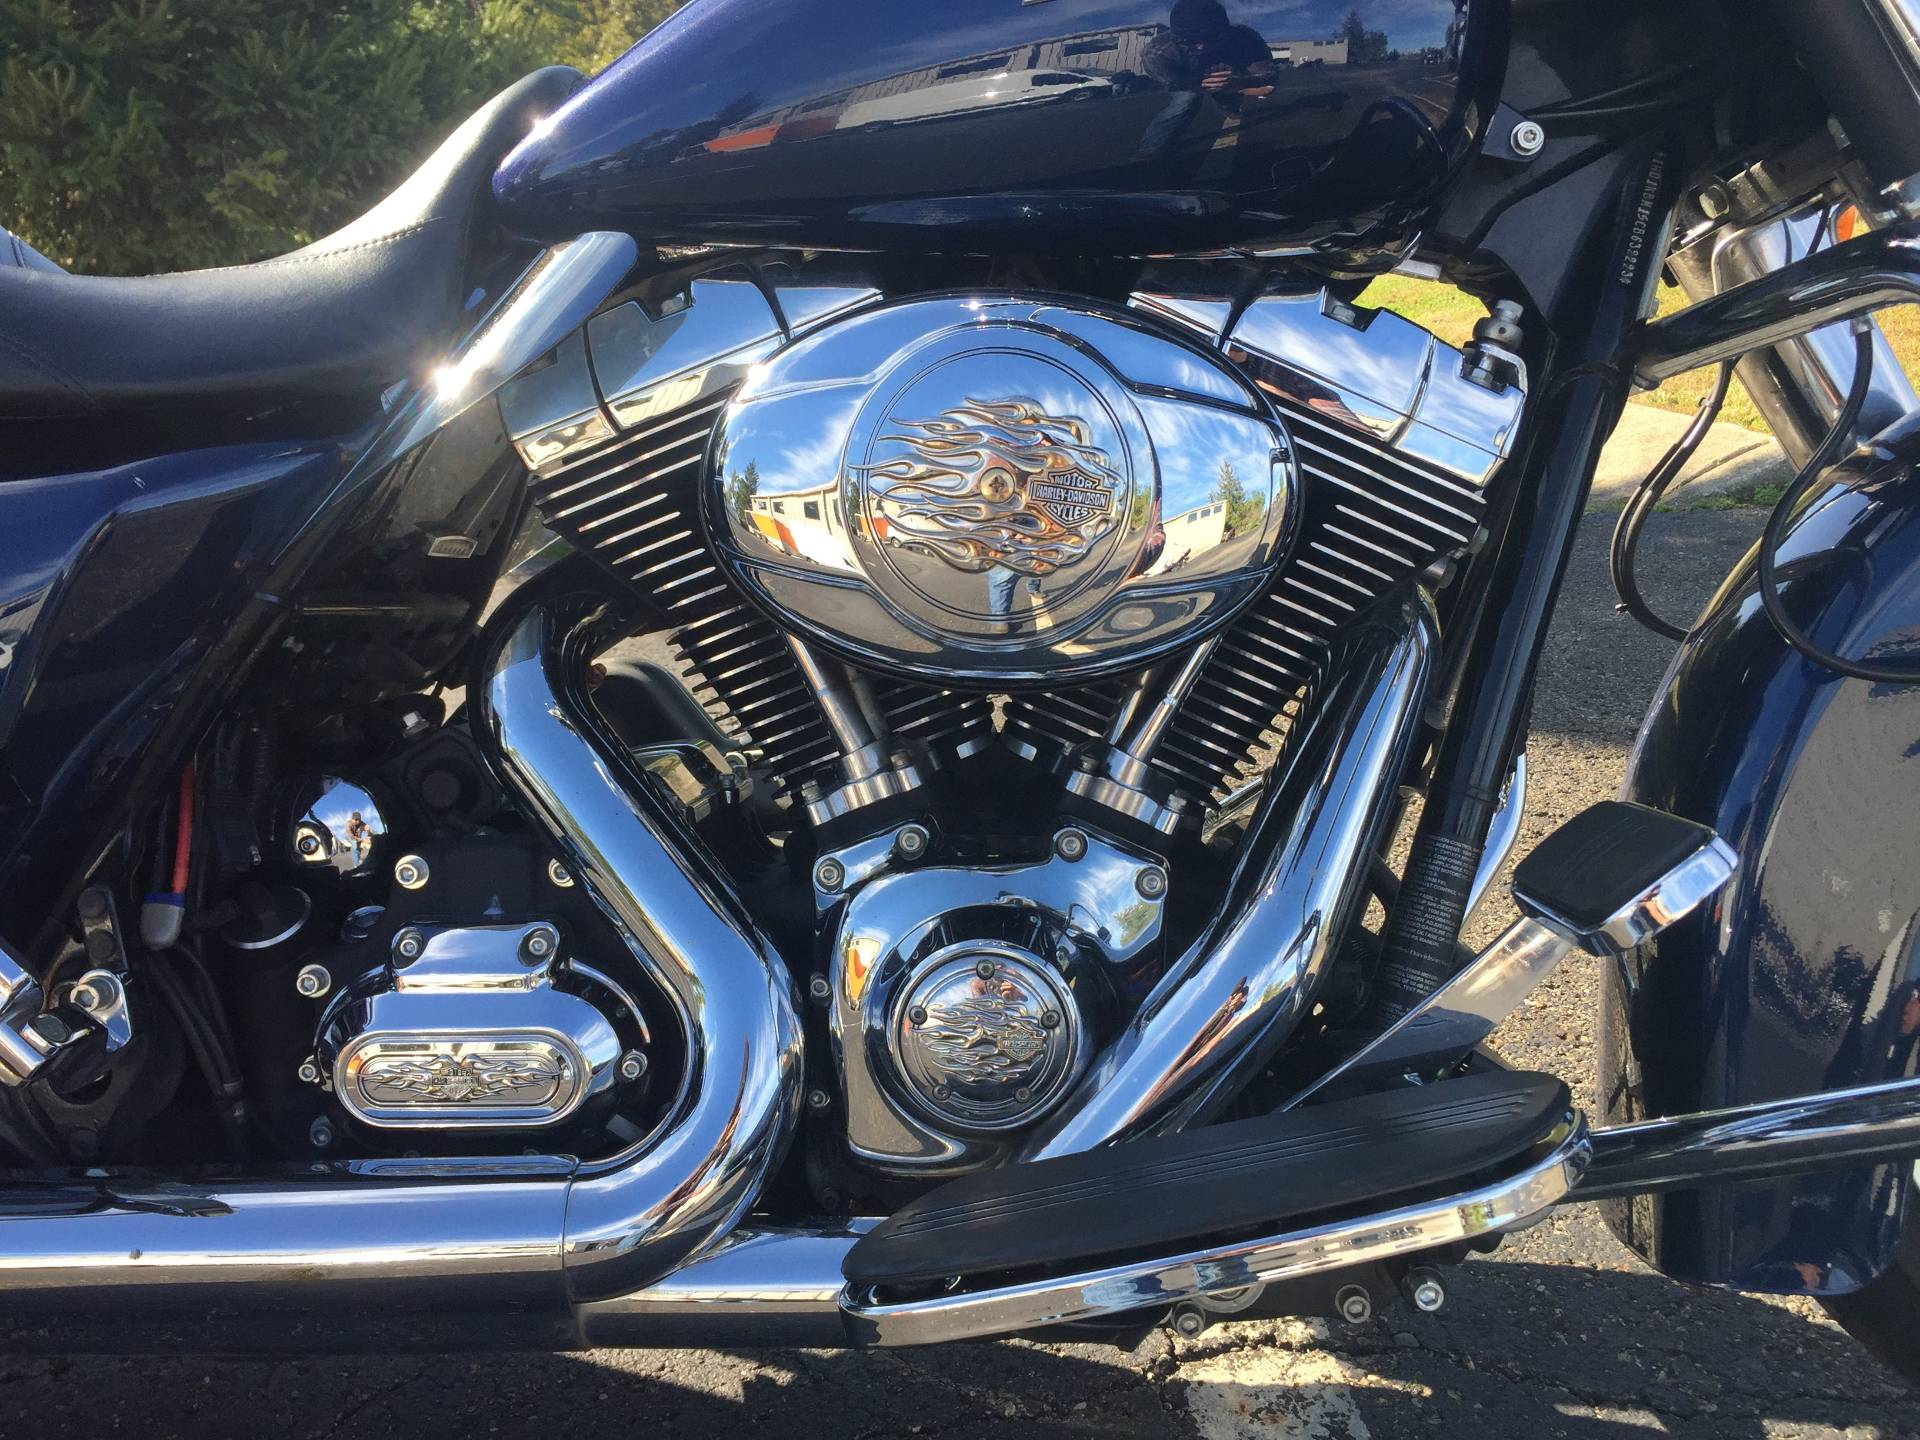 2012 Harley-Davidson Street Glide® in Sunbury, Ohio - Photo 8